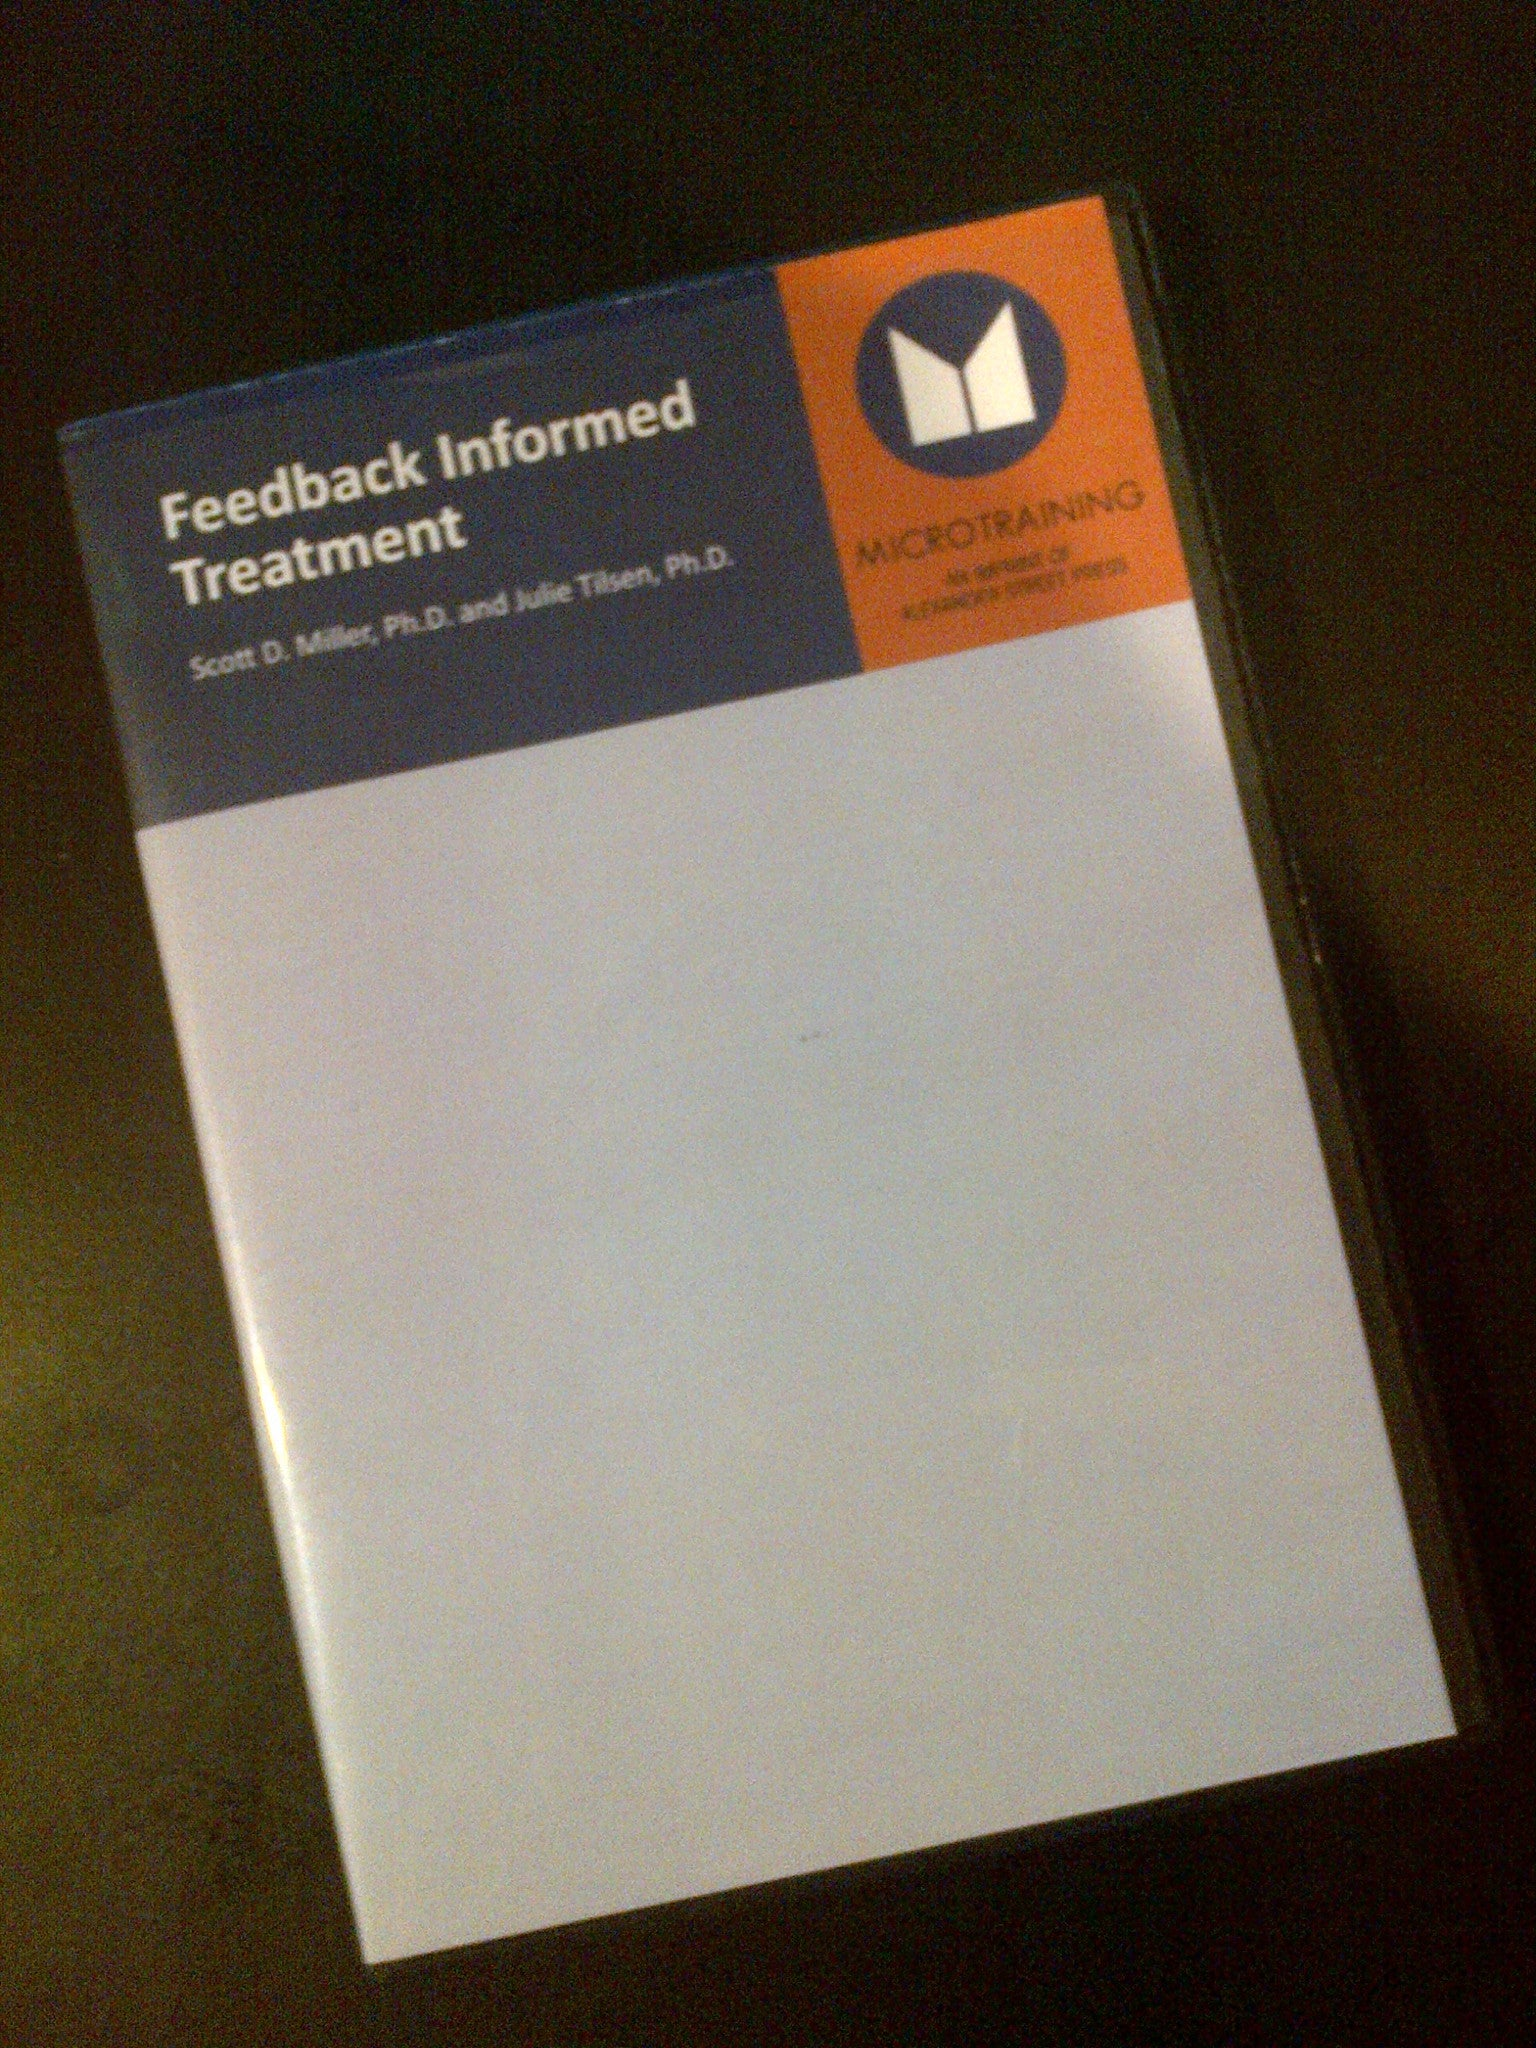 Feedback Informed Treatment, Individual Edition